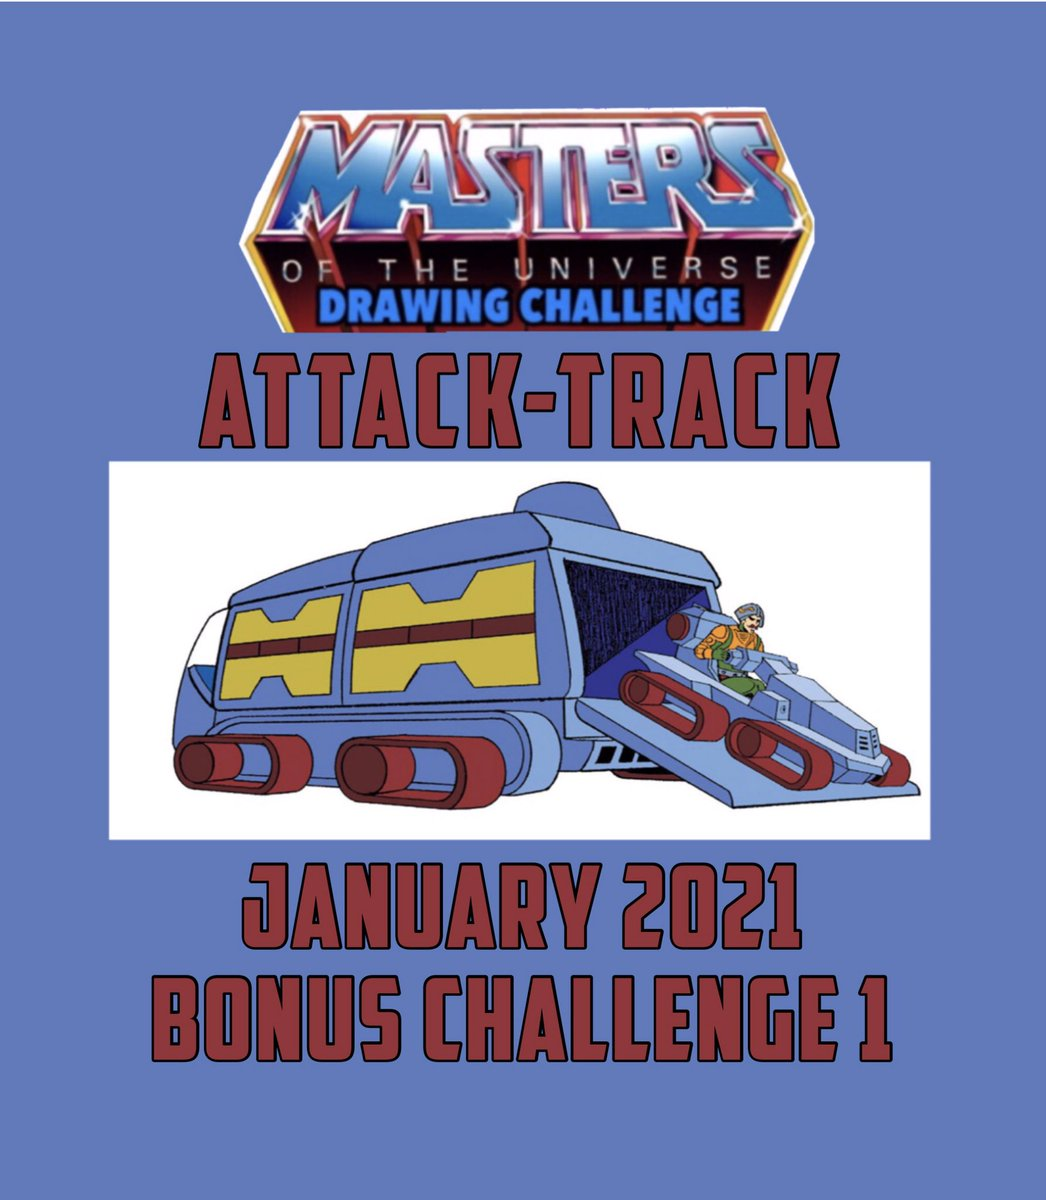 NEW MASTERS OF THE UNIVERSE DRAWING CHALLENGE BONUS CHALLENGE   💥Attack Track   Bonus Challenge 1 January 12, 2021  #motudrawingchallenge #mastersoftheuniverse #attacktrack #heman #skeletor #motu #motufanart #motuart